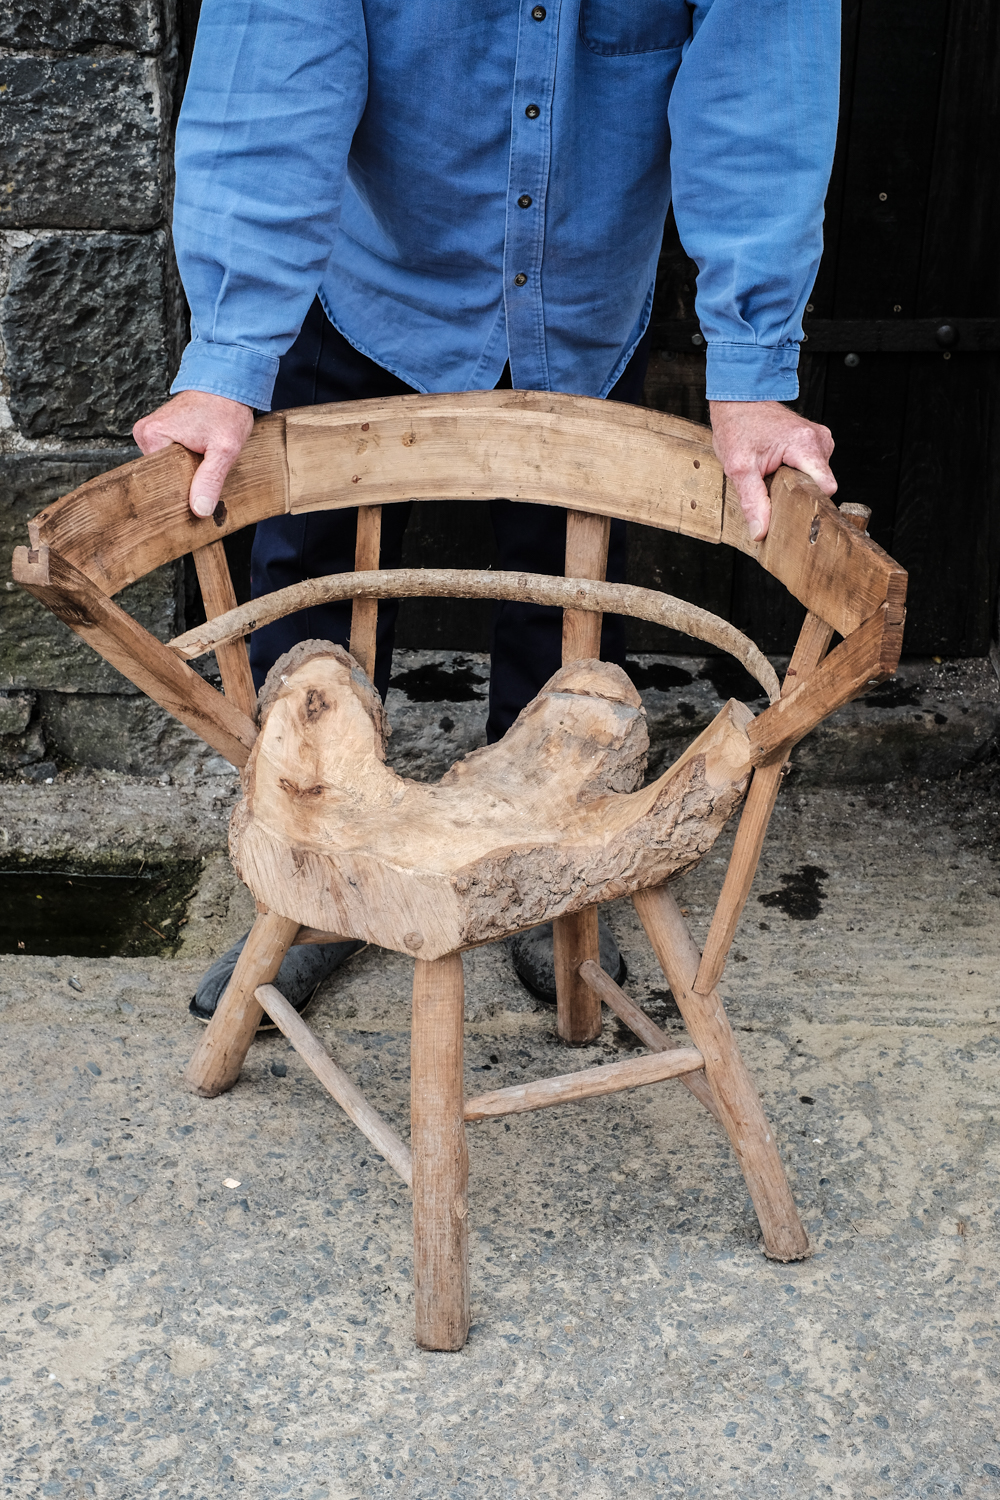 And felled tree becomes a handmade chair!